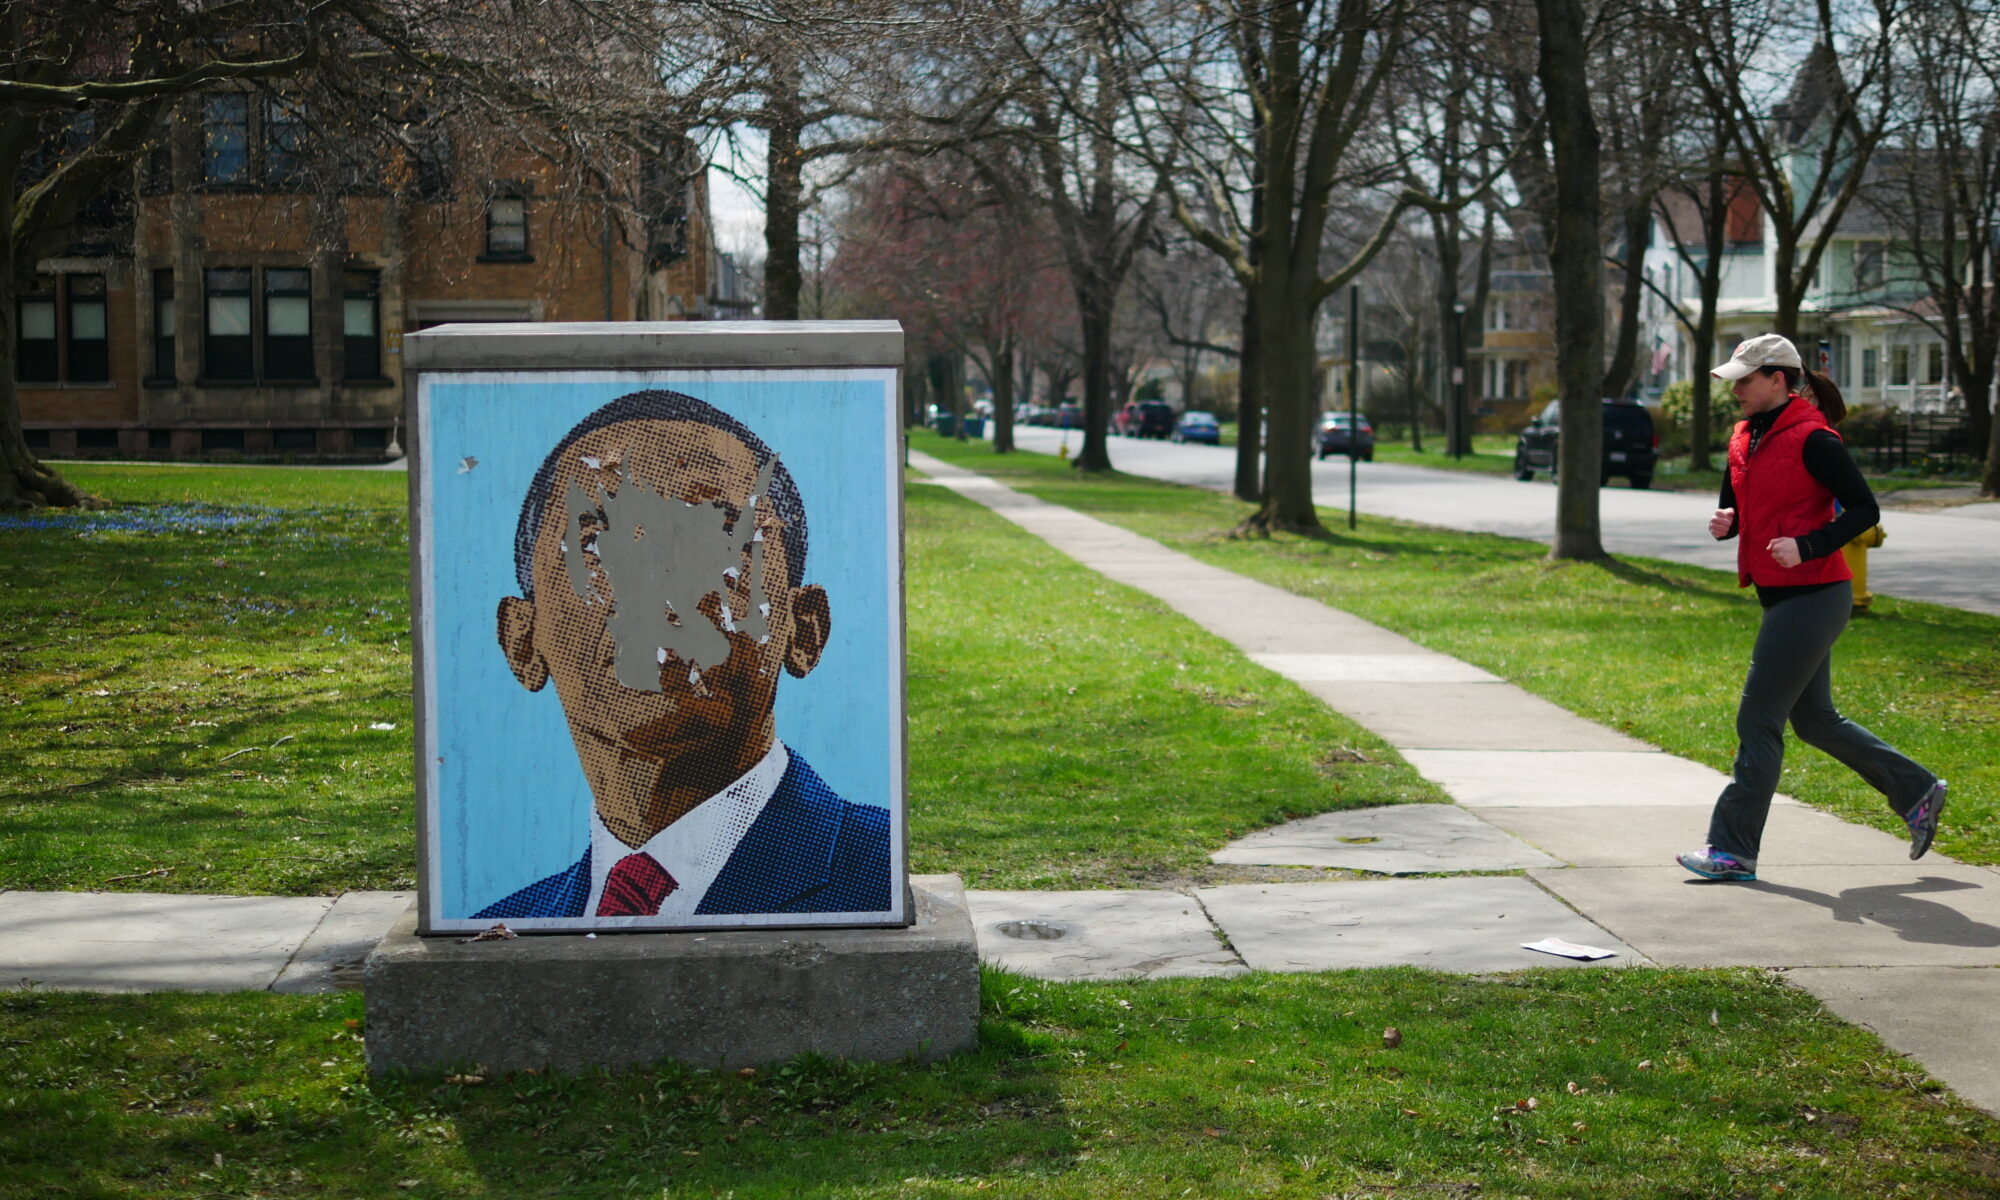 a jogger runs by a defaced image of barack obama